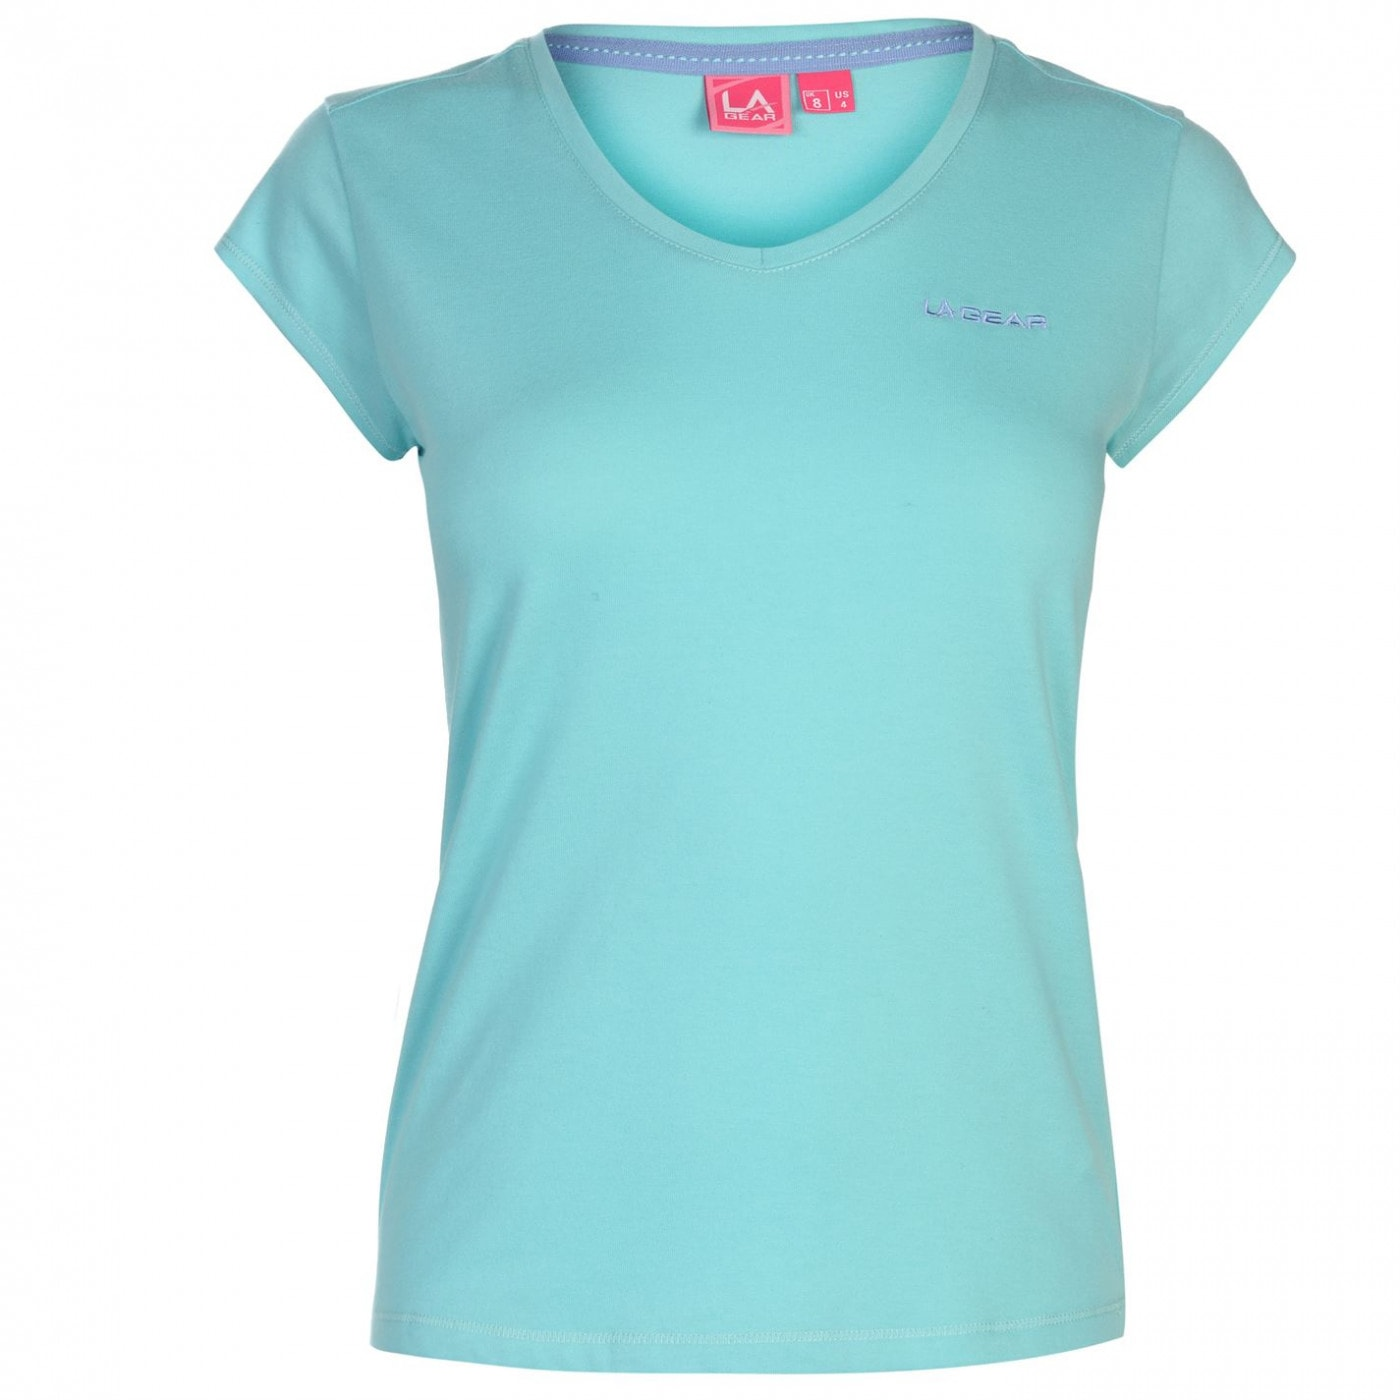 Women's T-shirt LA Gear V neck